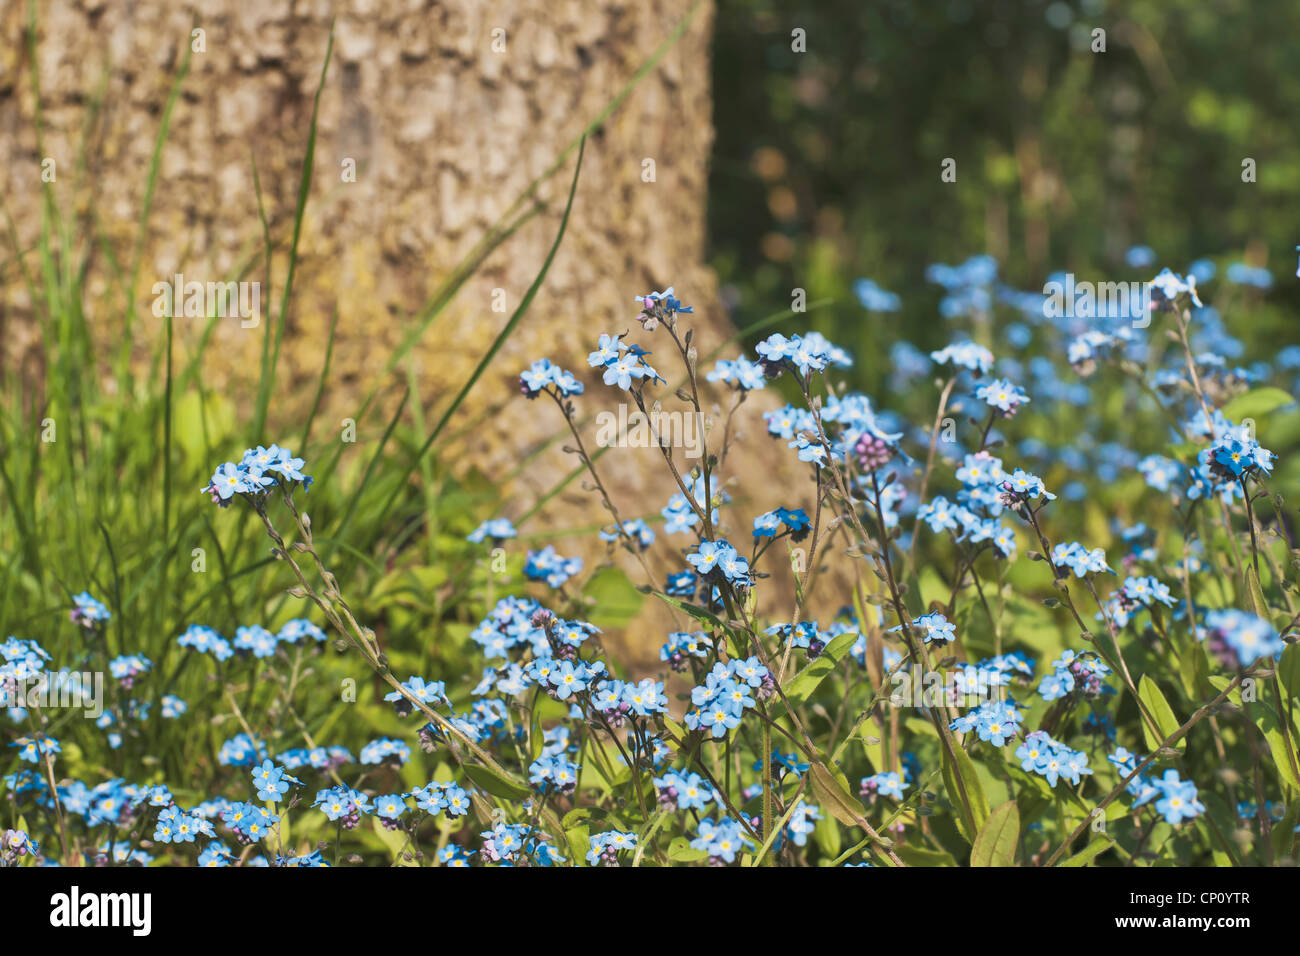 Myosotis is a genus of flowering plants in the family Boraginaceae that are commonly called Forget-me-not. Stock Photo